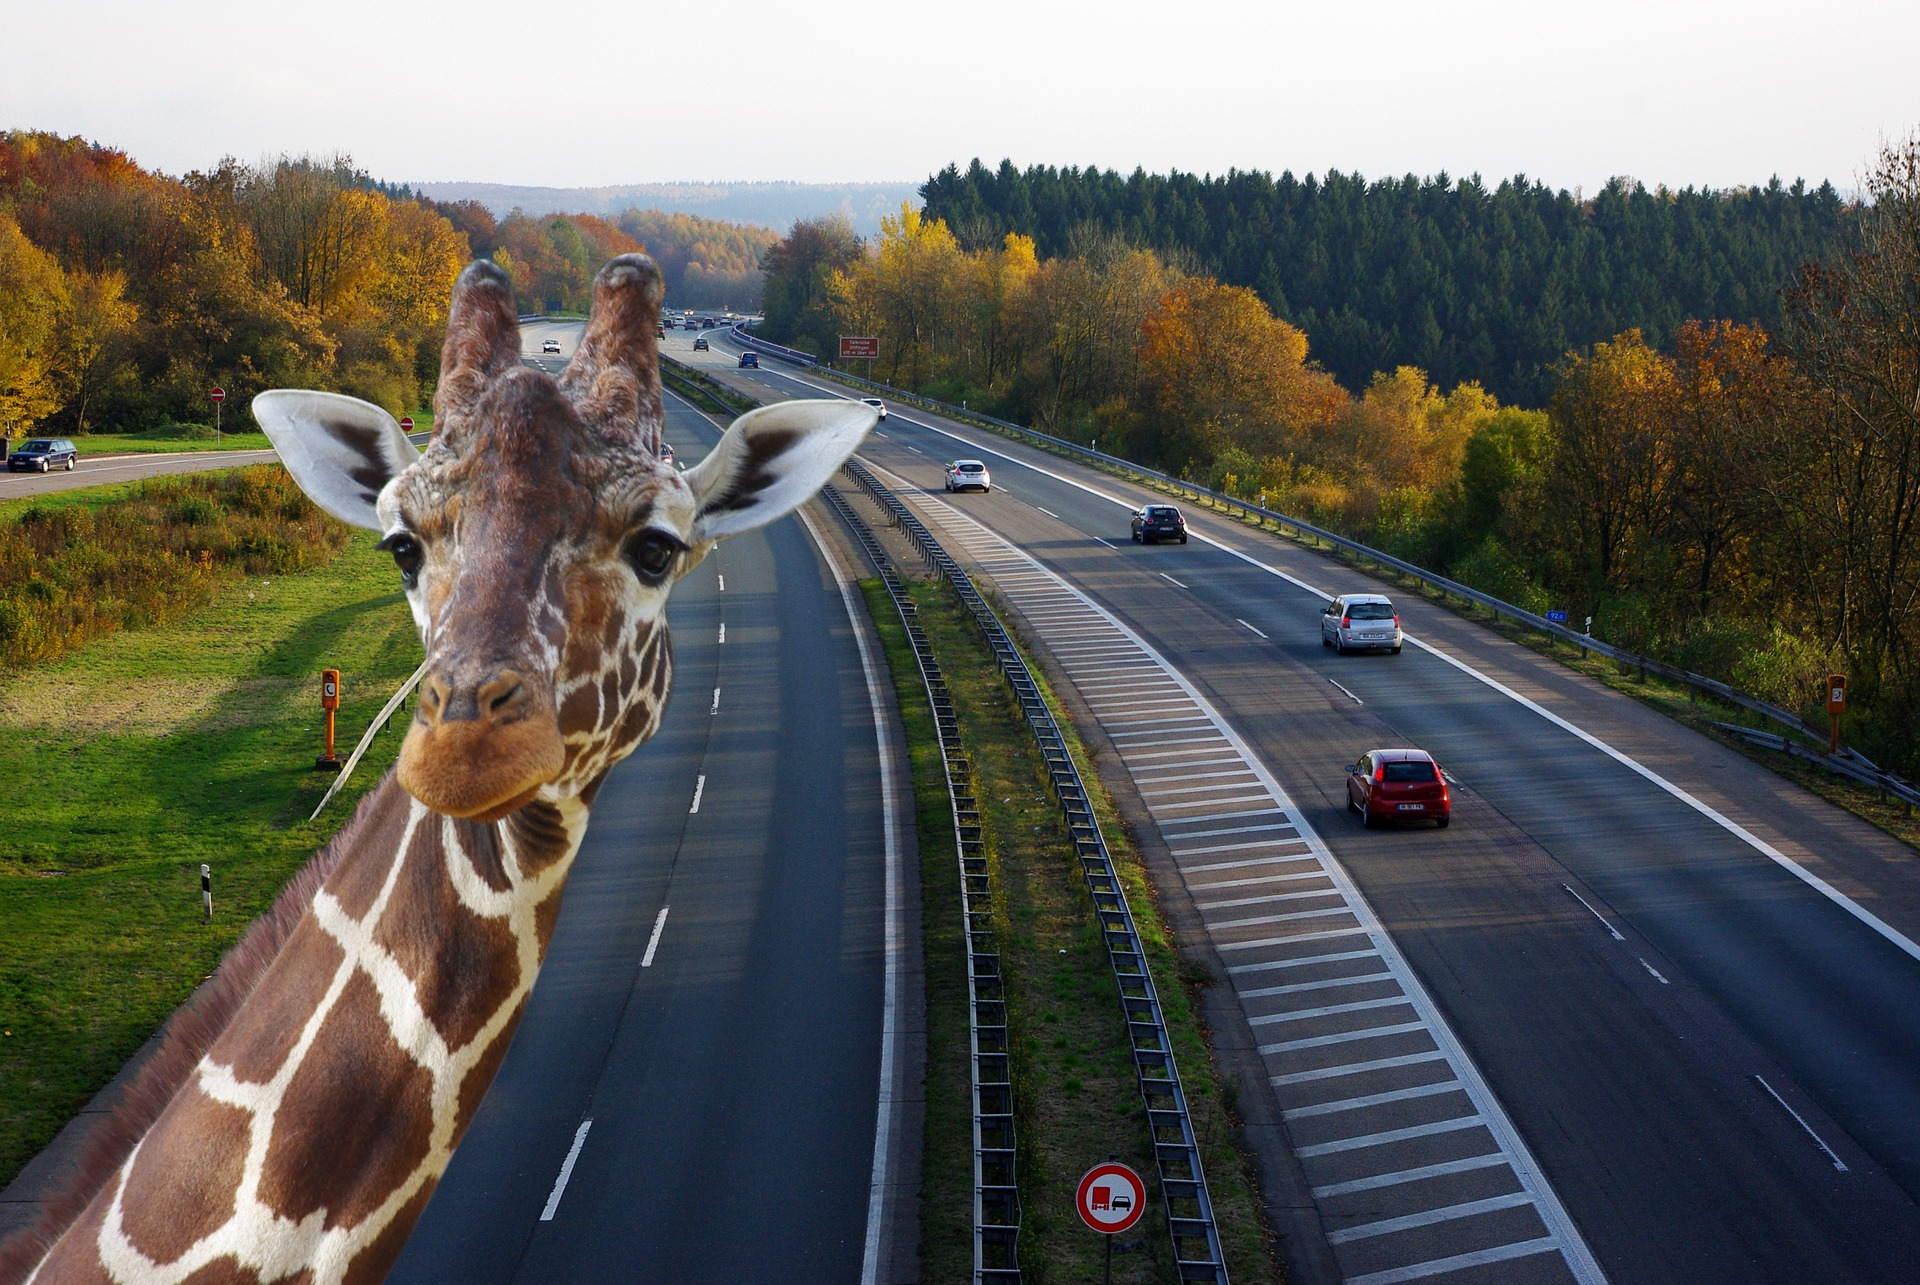 Zebra on the Highway, Animal, Busy, Construction, Highway, HQ Photo